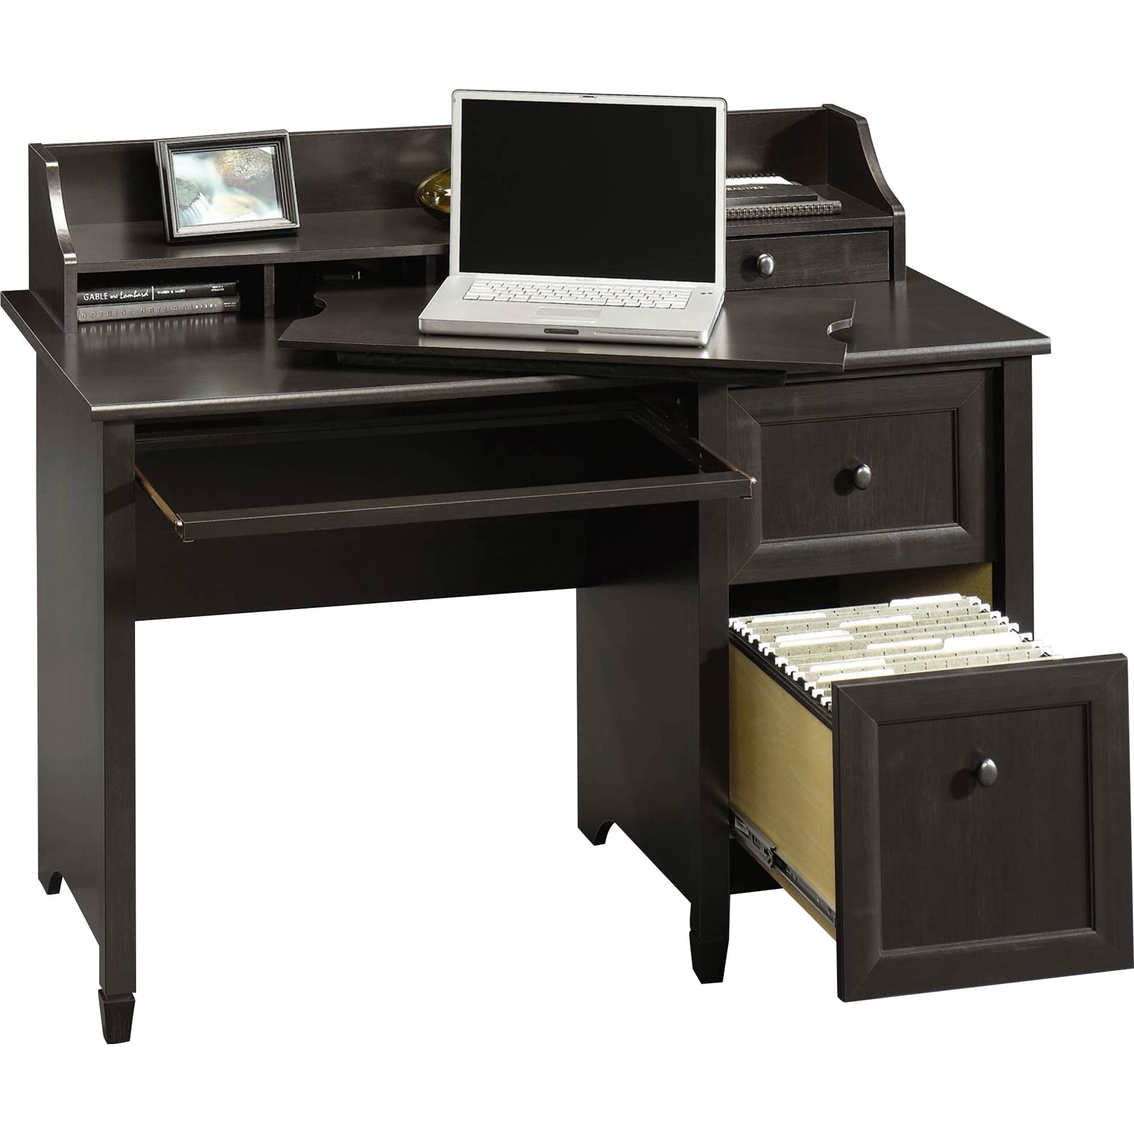 Sauder Computer Desks | Desks at Walmart | Desk with Filing Cabinet